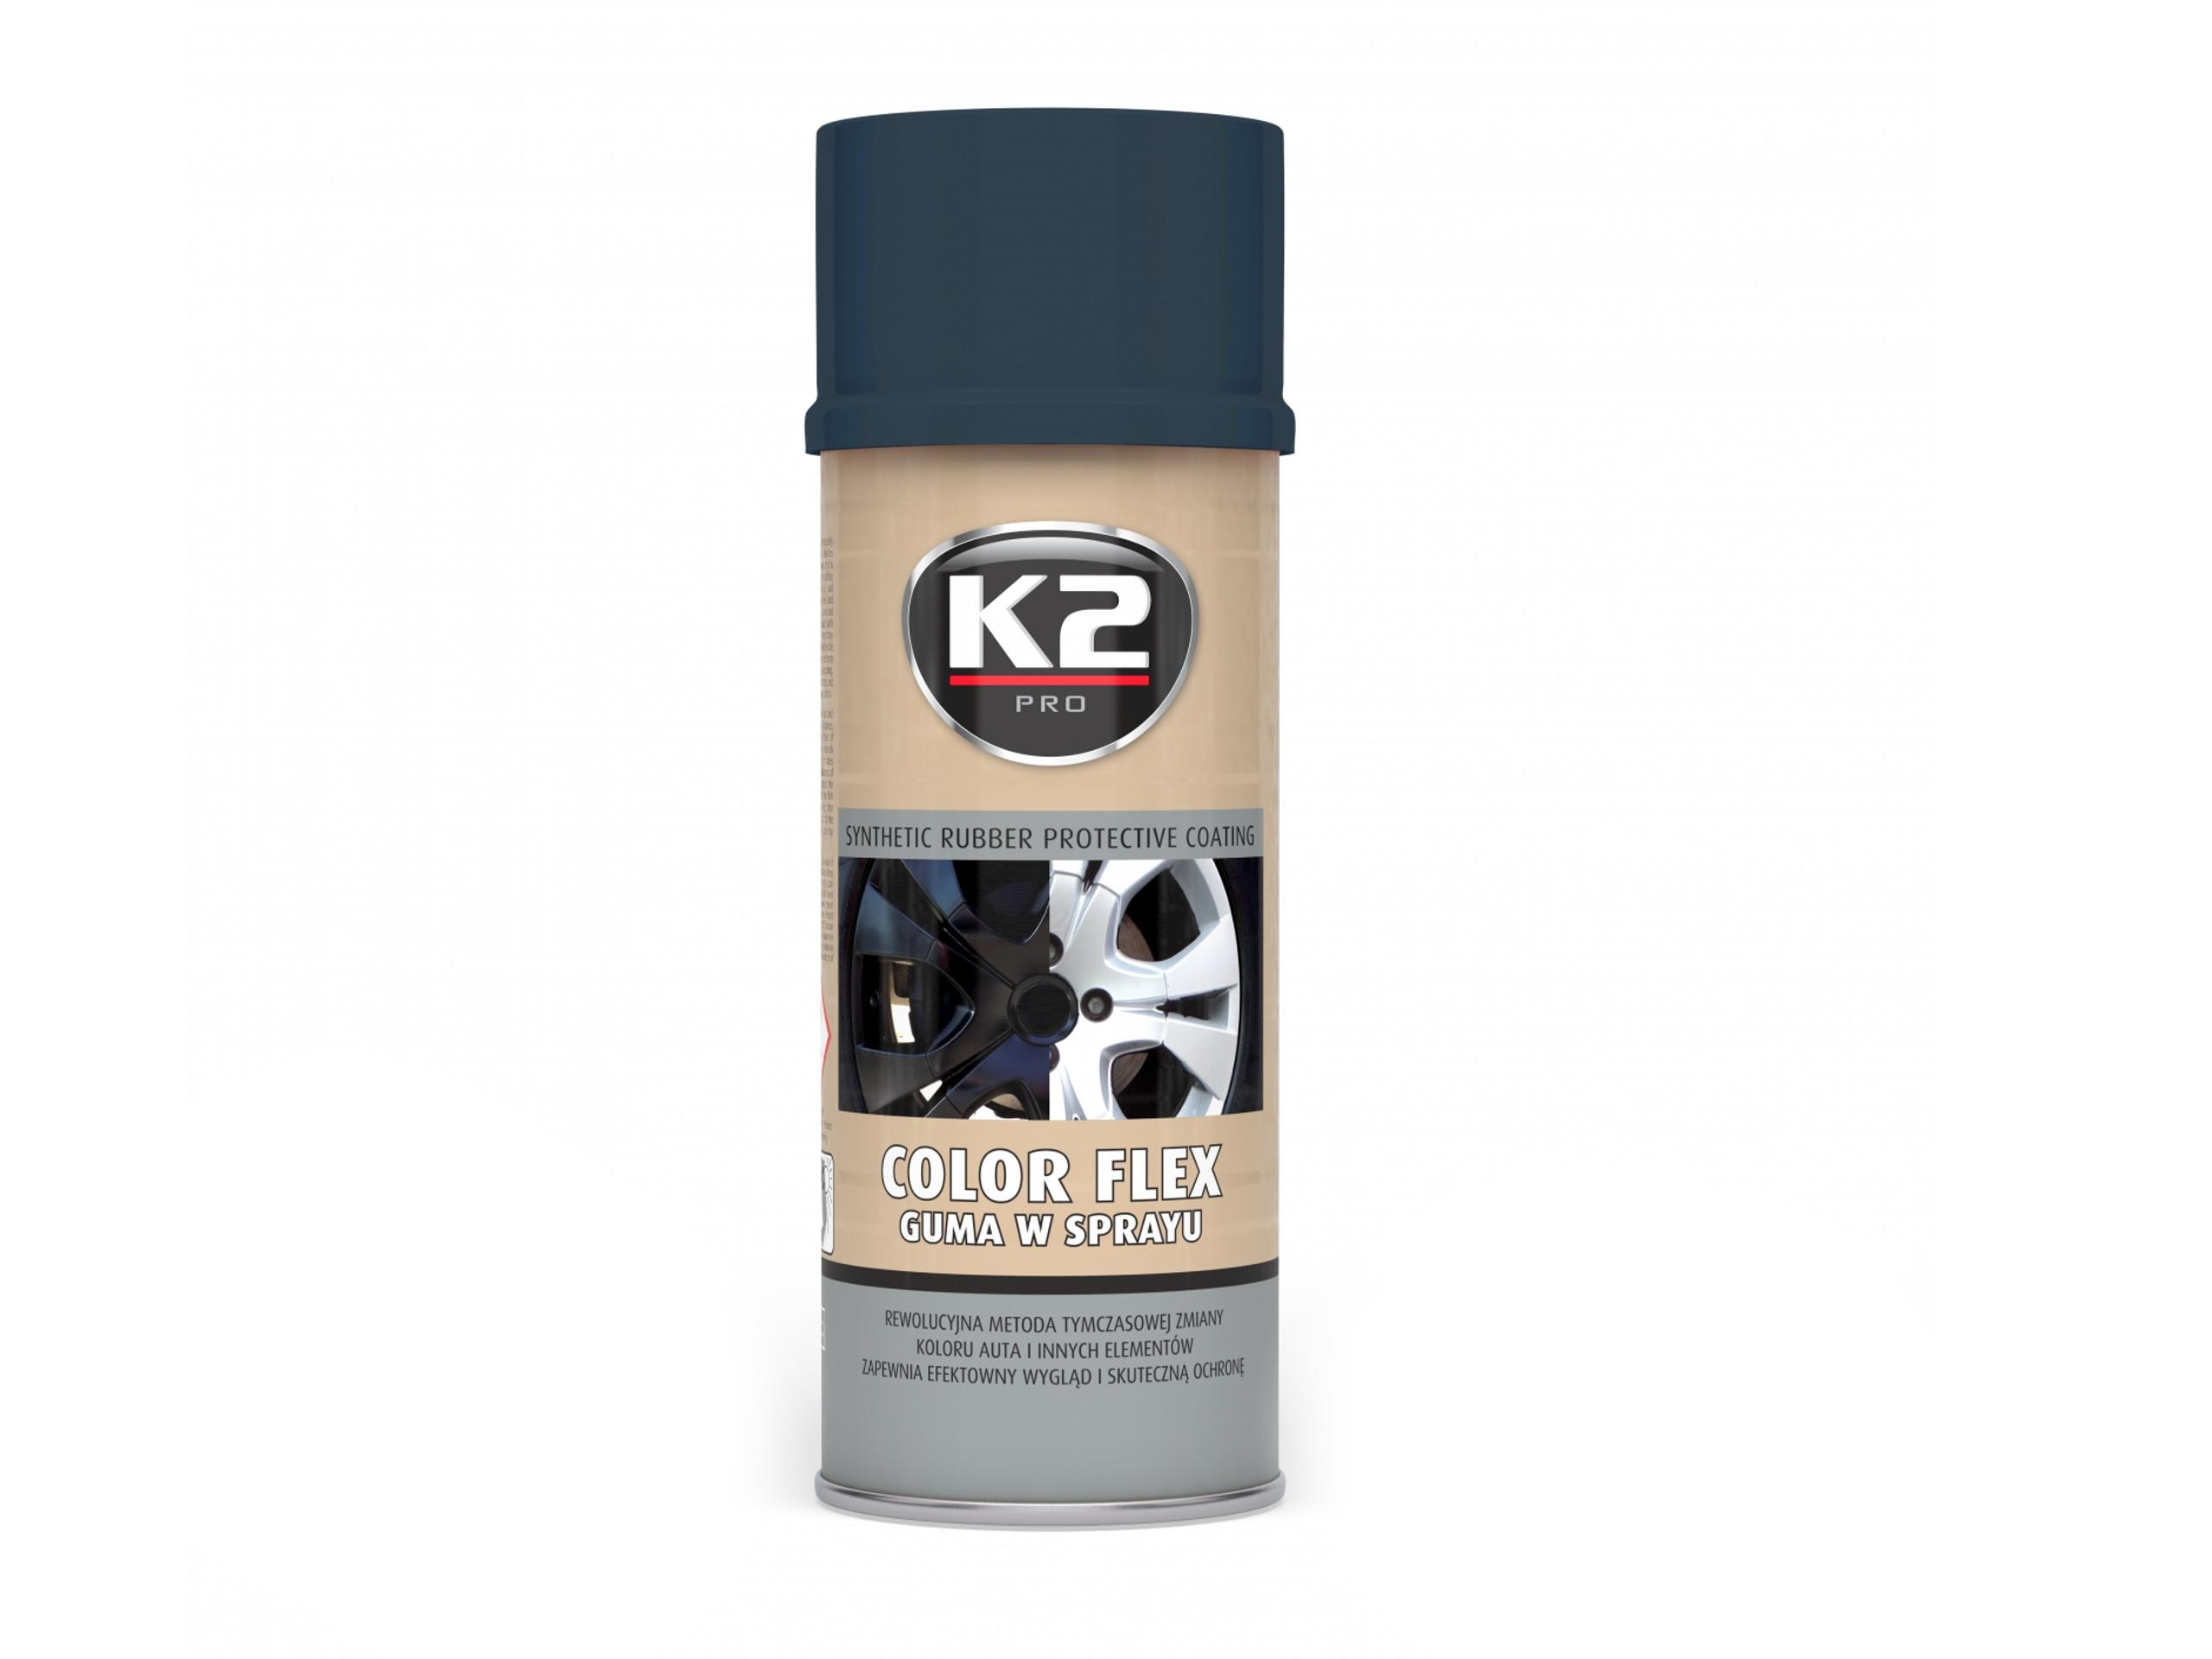 K2 COLOR FLEX GUMA W SPRAYU 400ML CARBON